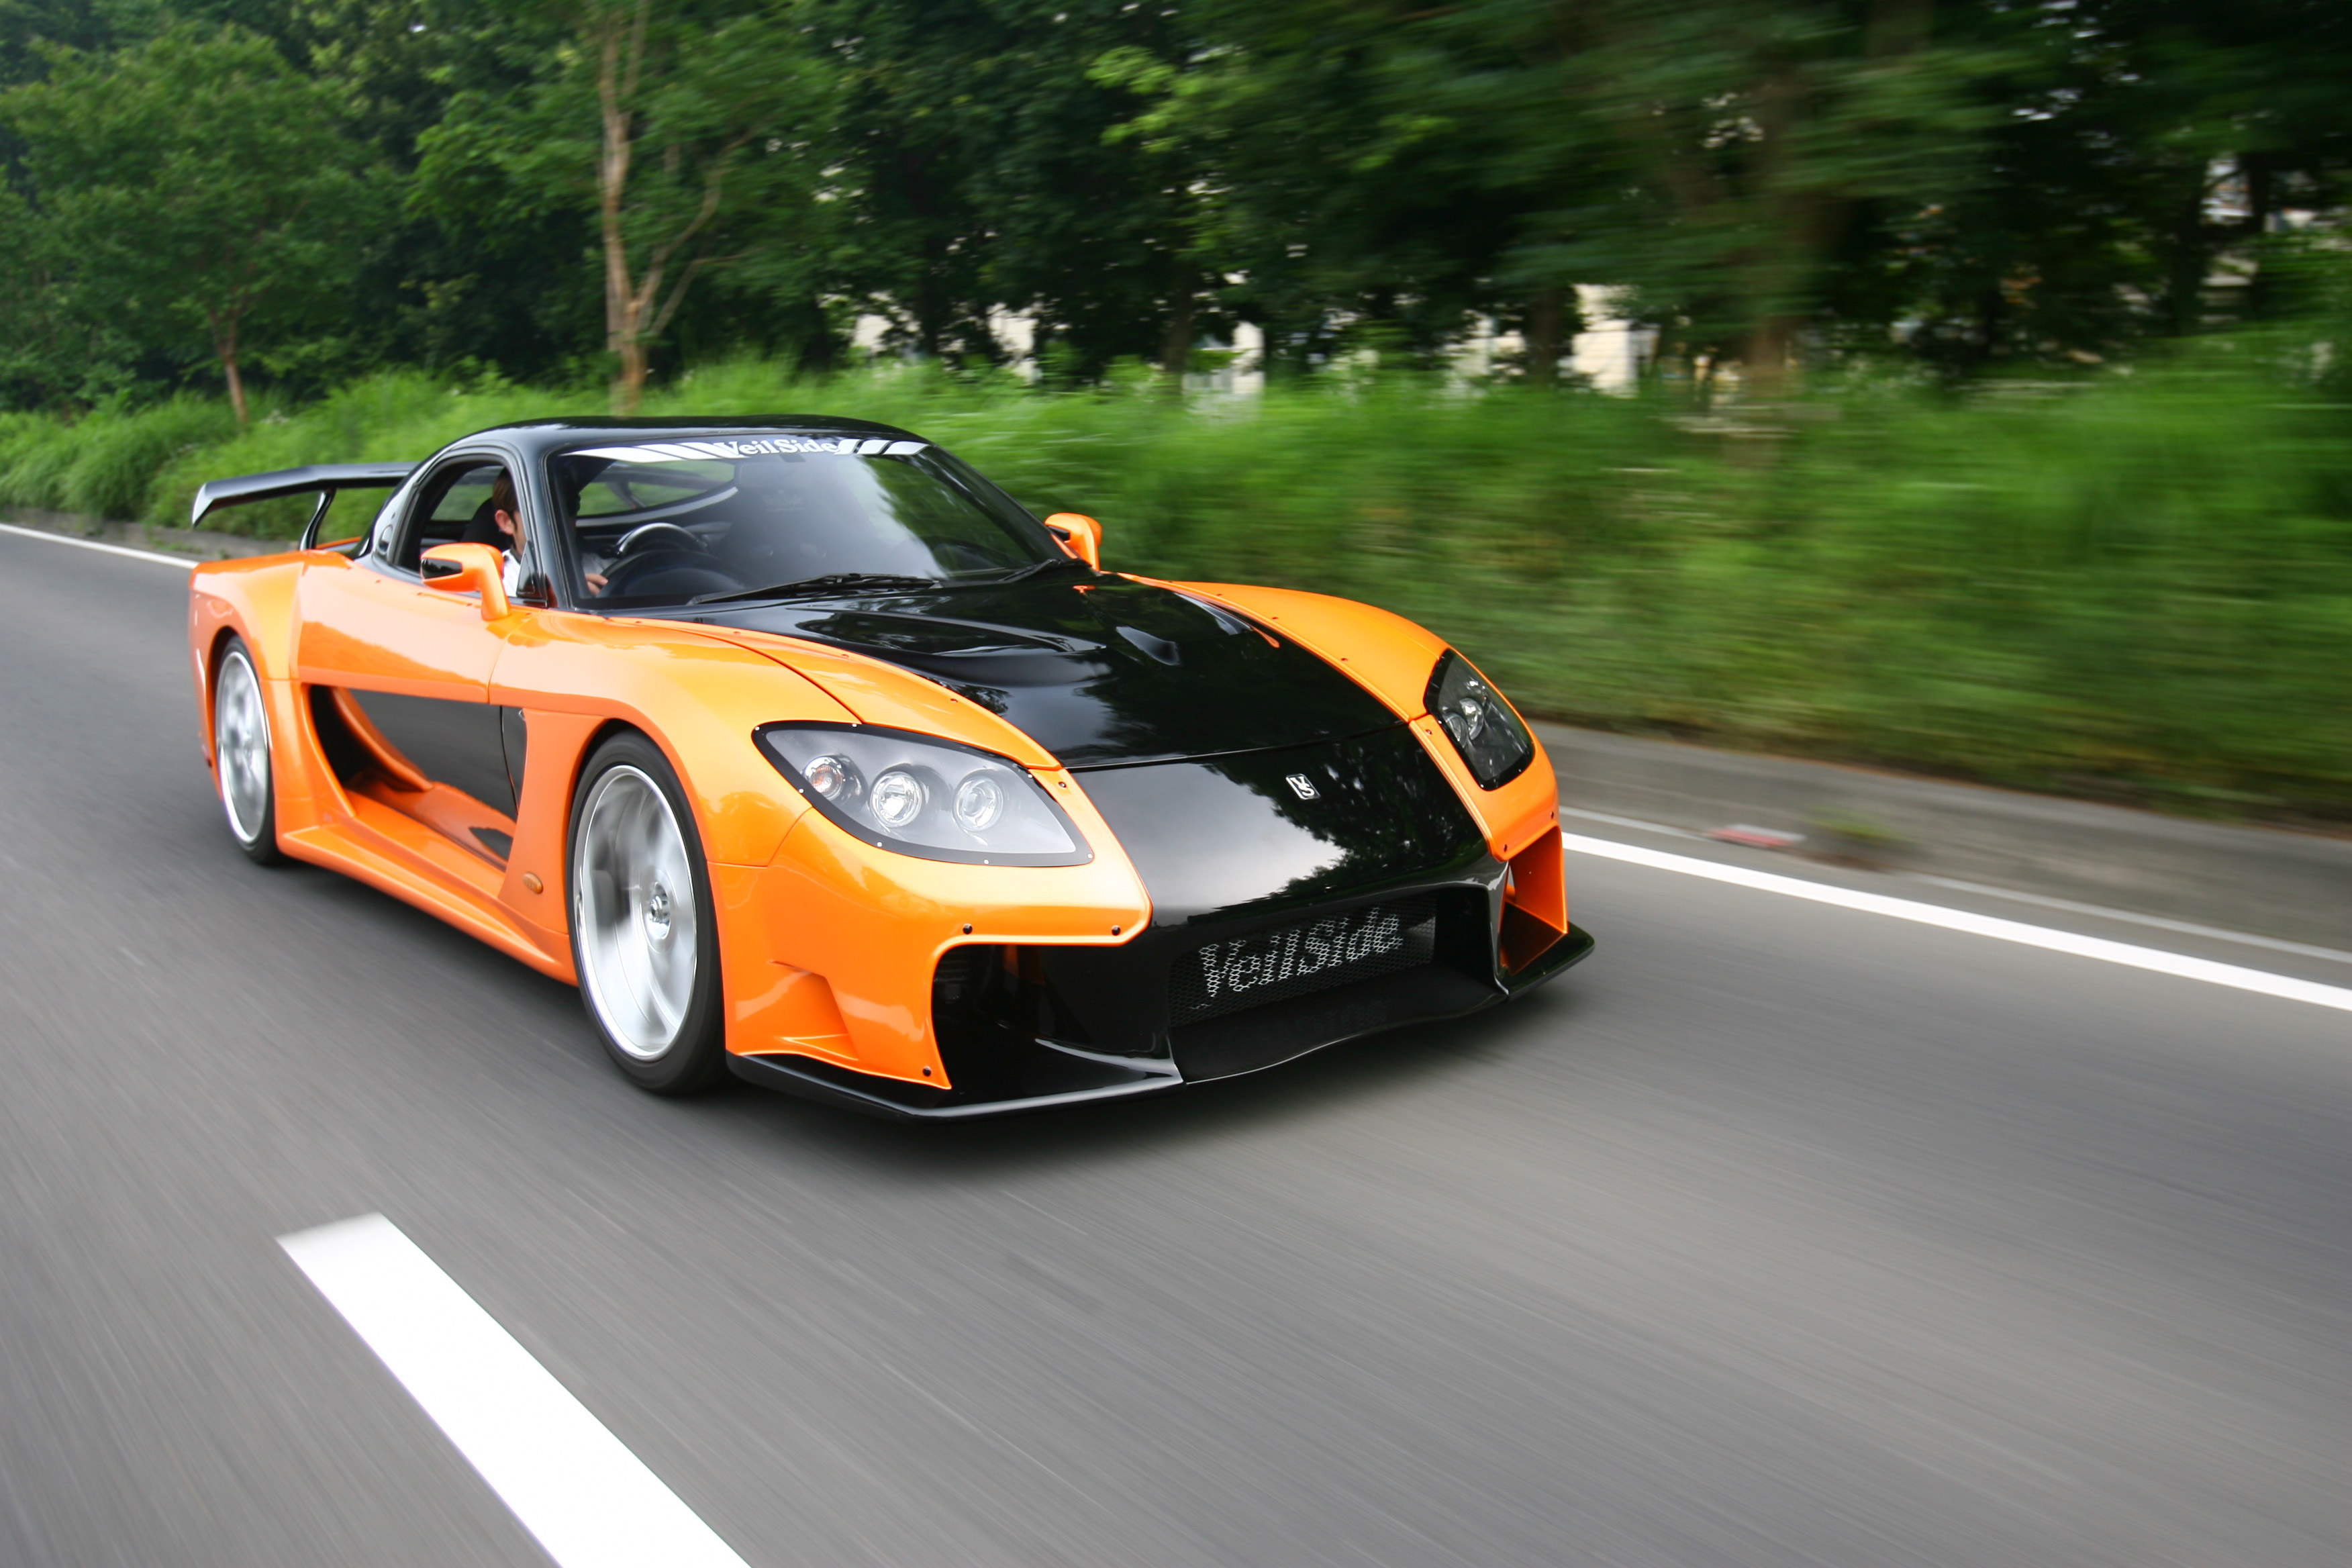 RX-7 Fortune | Take a look at our globally recognized custom car(s